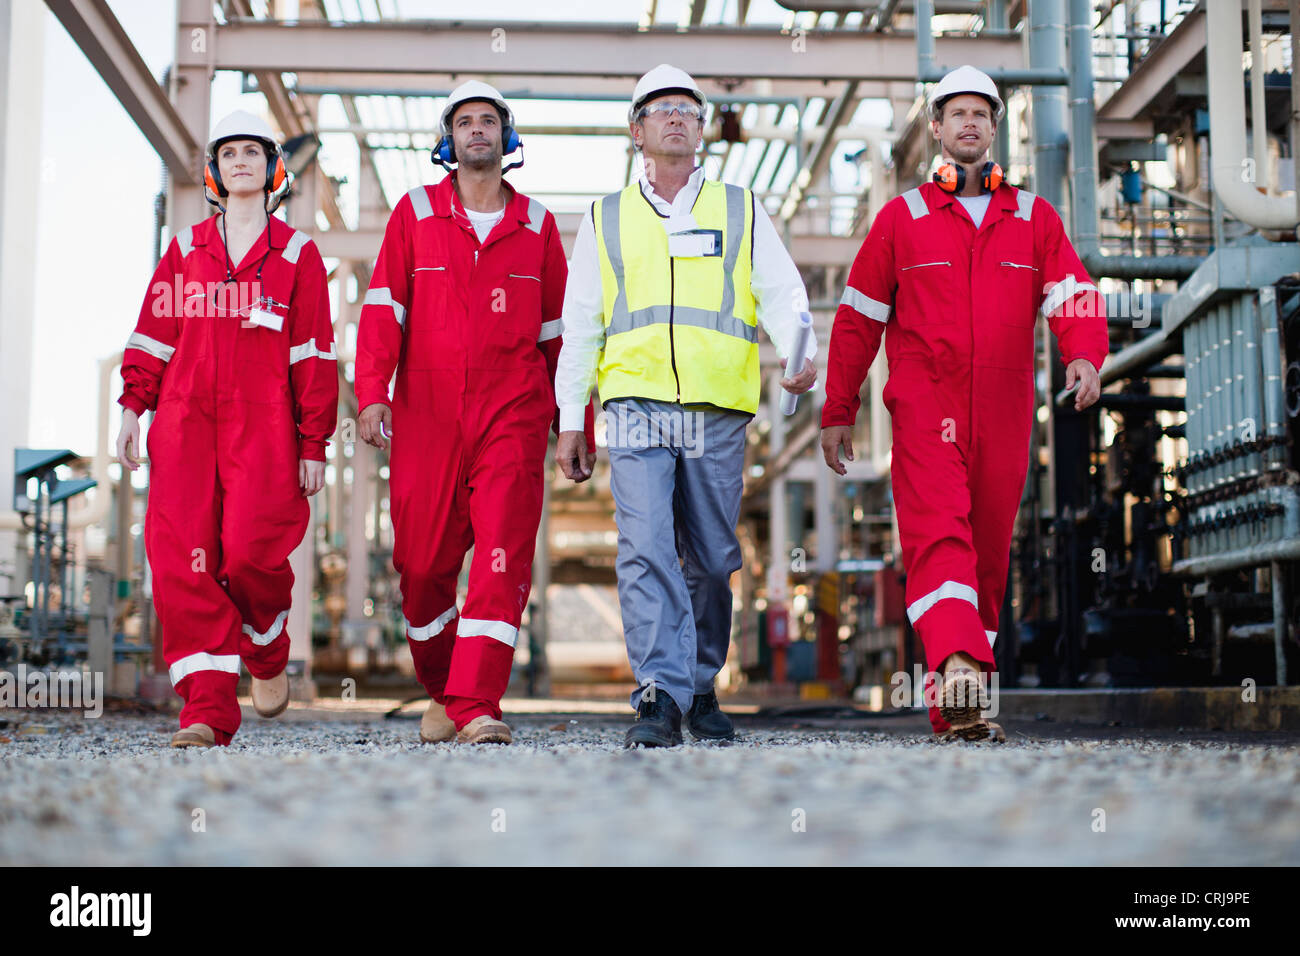 Workers walking at chemical plant - Stock Image